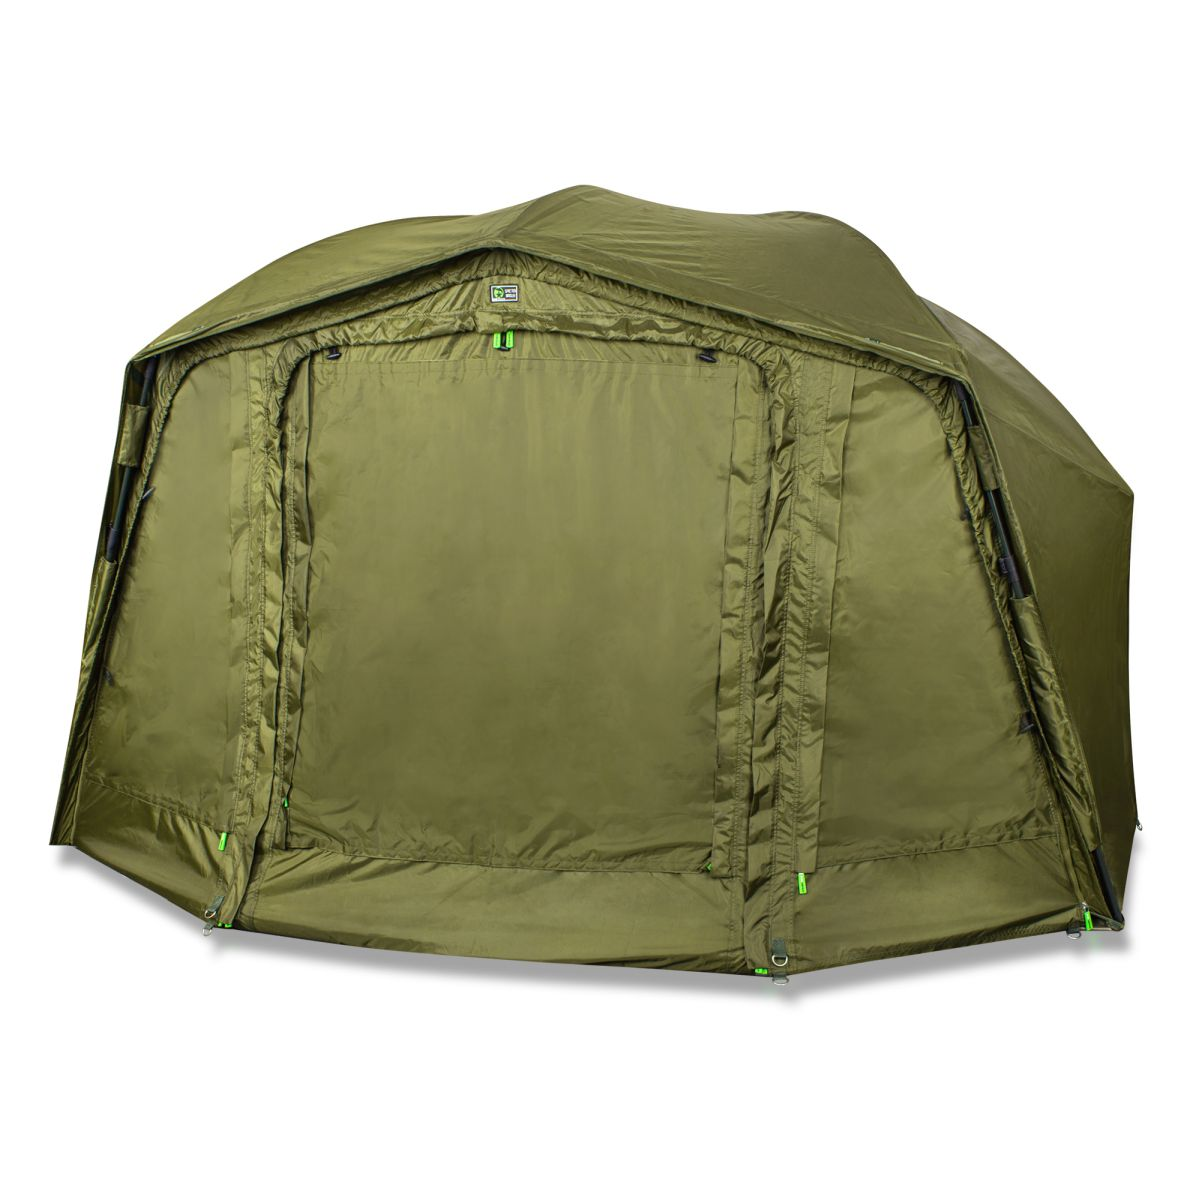 STARFISHING Brolly - Specter G2